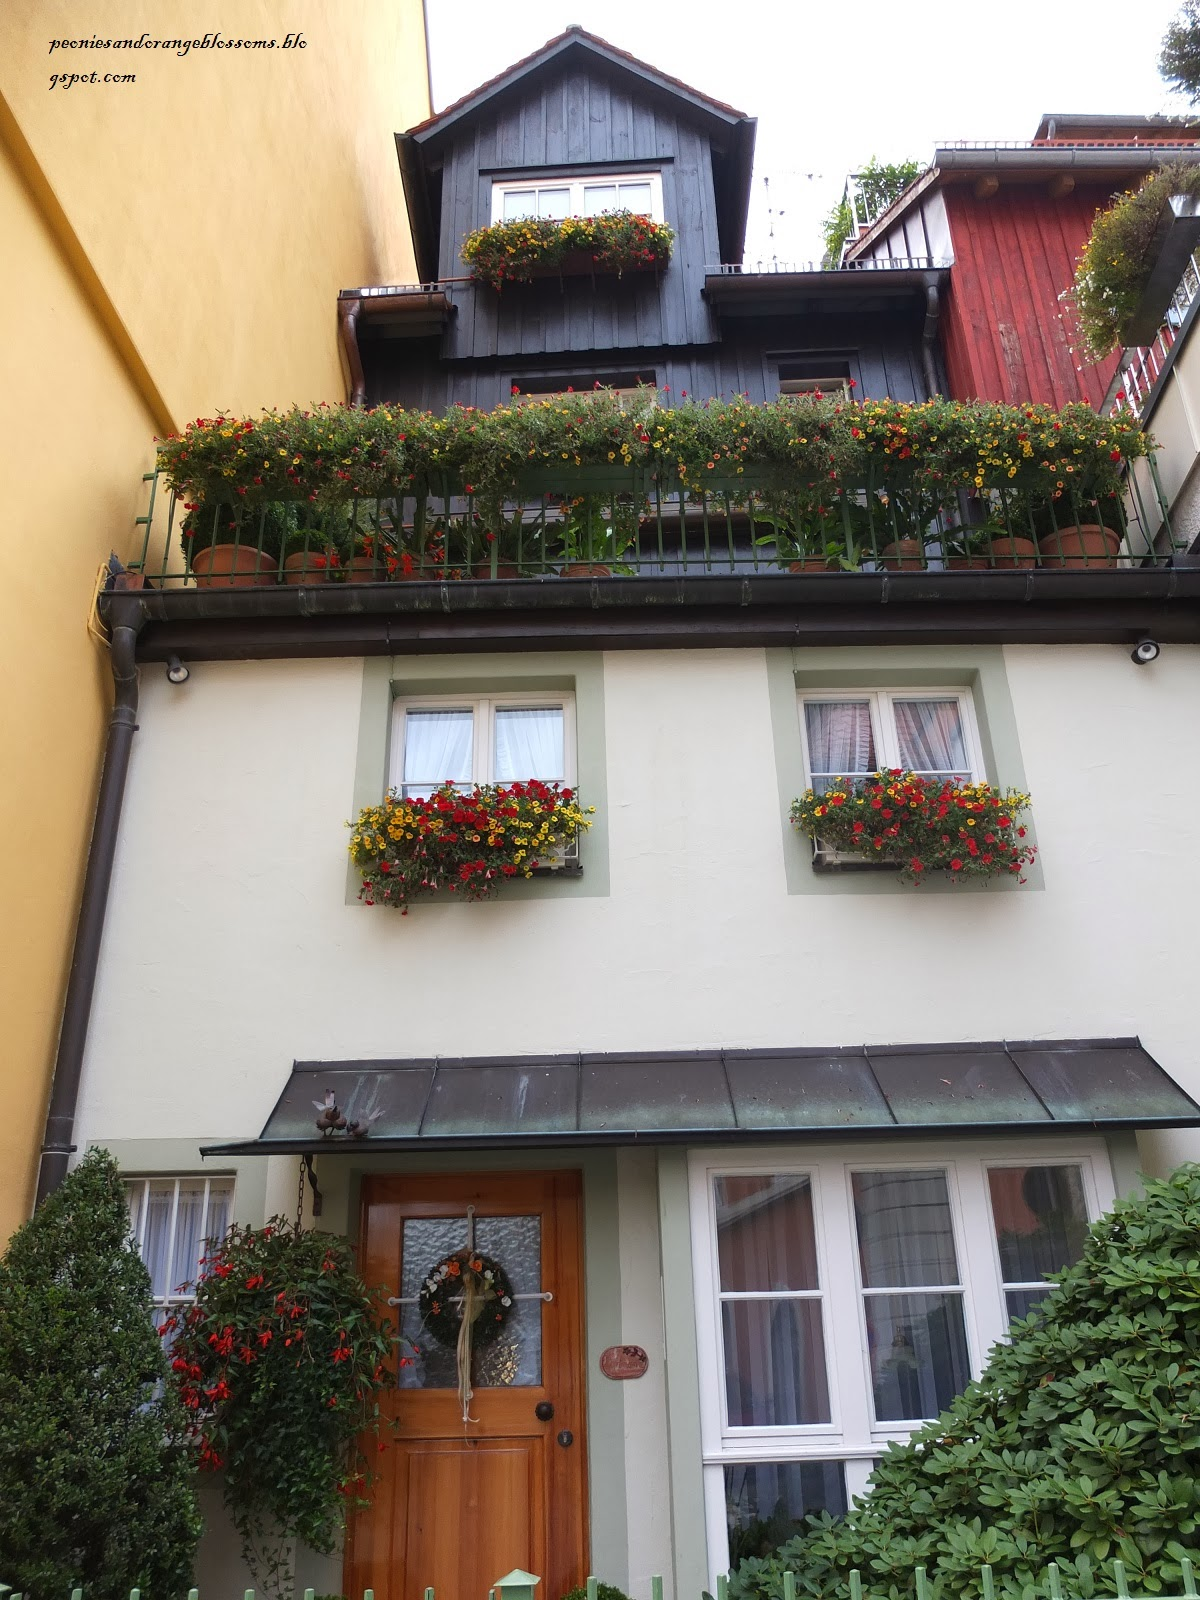 Balcony Geraniums in European Window Boxes - Peonies and Orange Blossoms